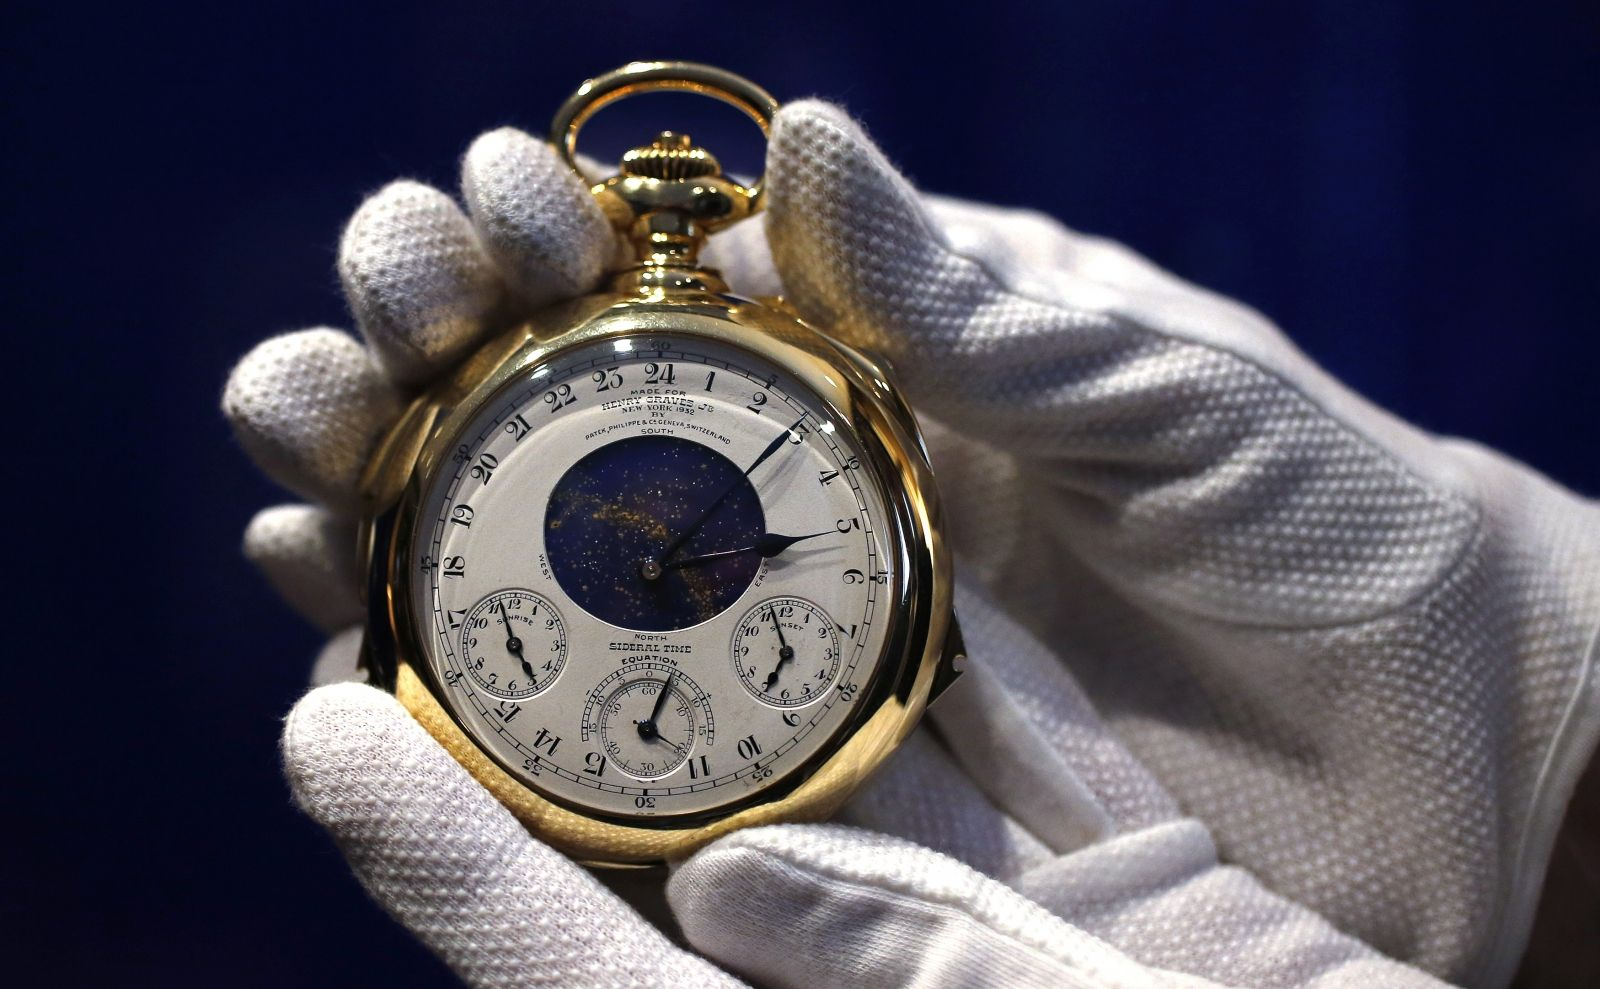 patek-philippe-watch-sothebys-auction